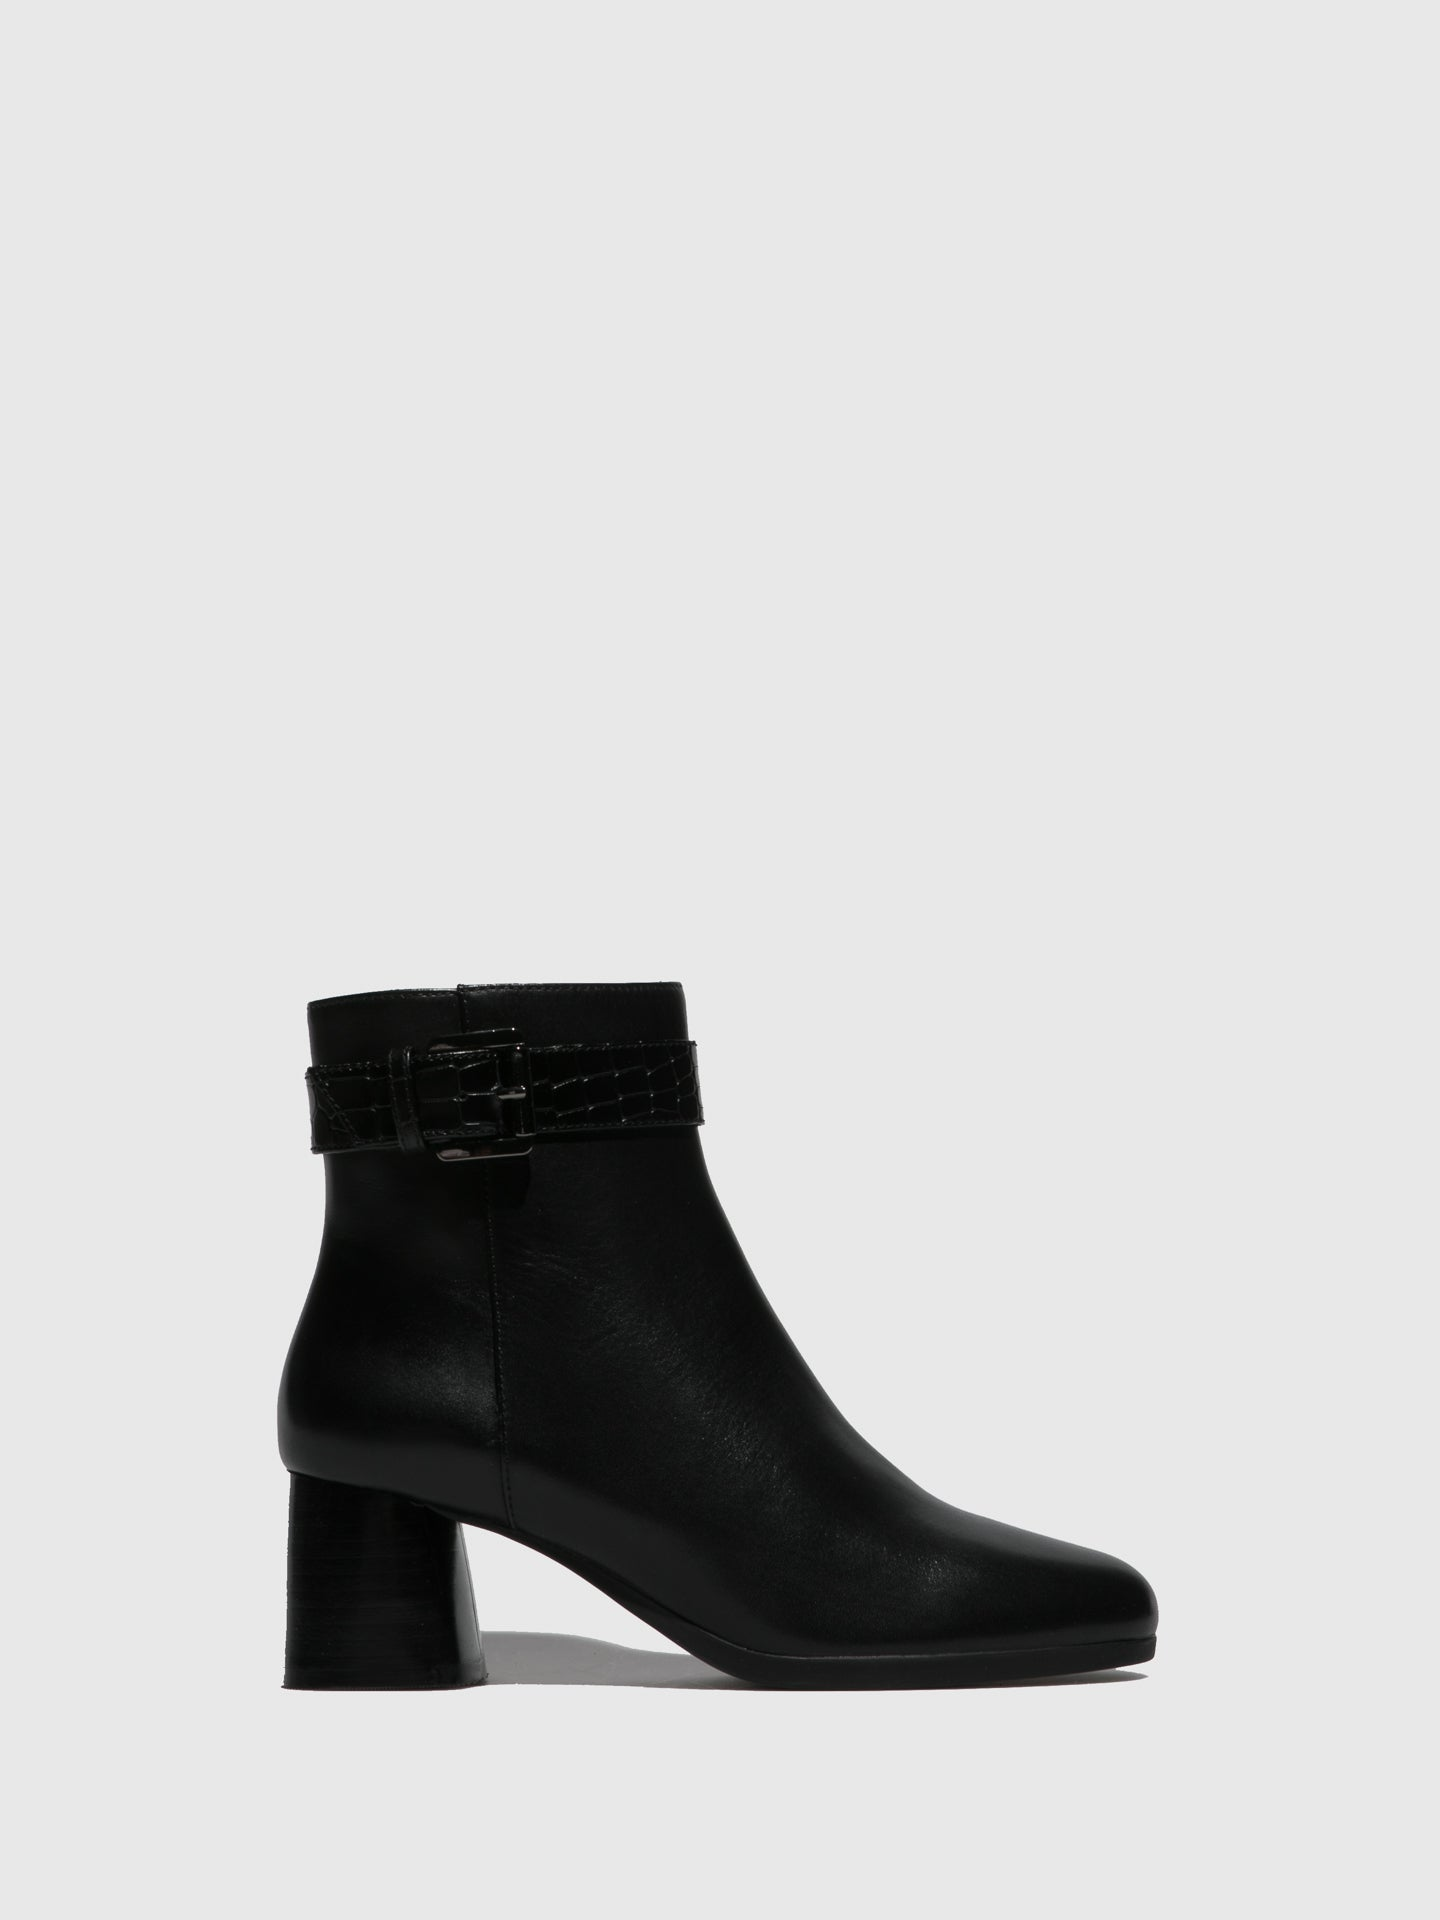 Geox Black Buckle Ankle Boots